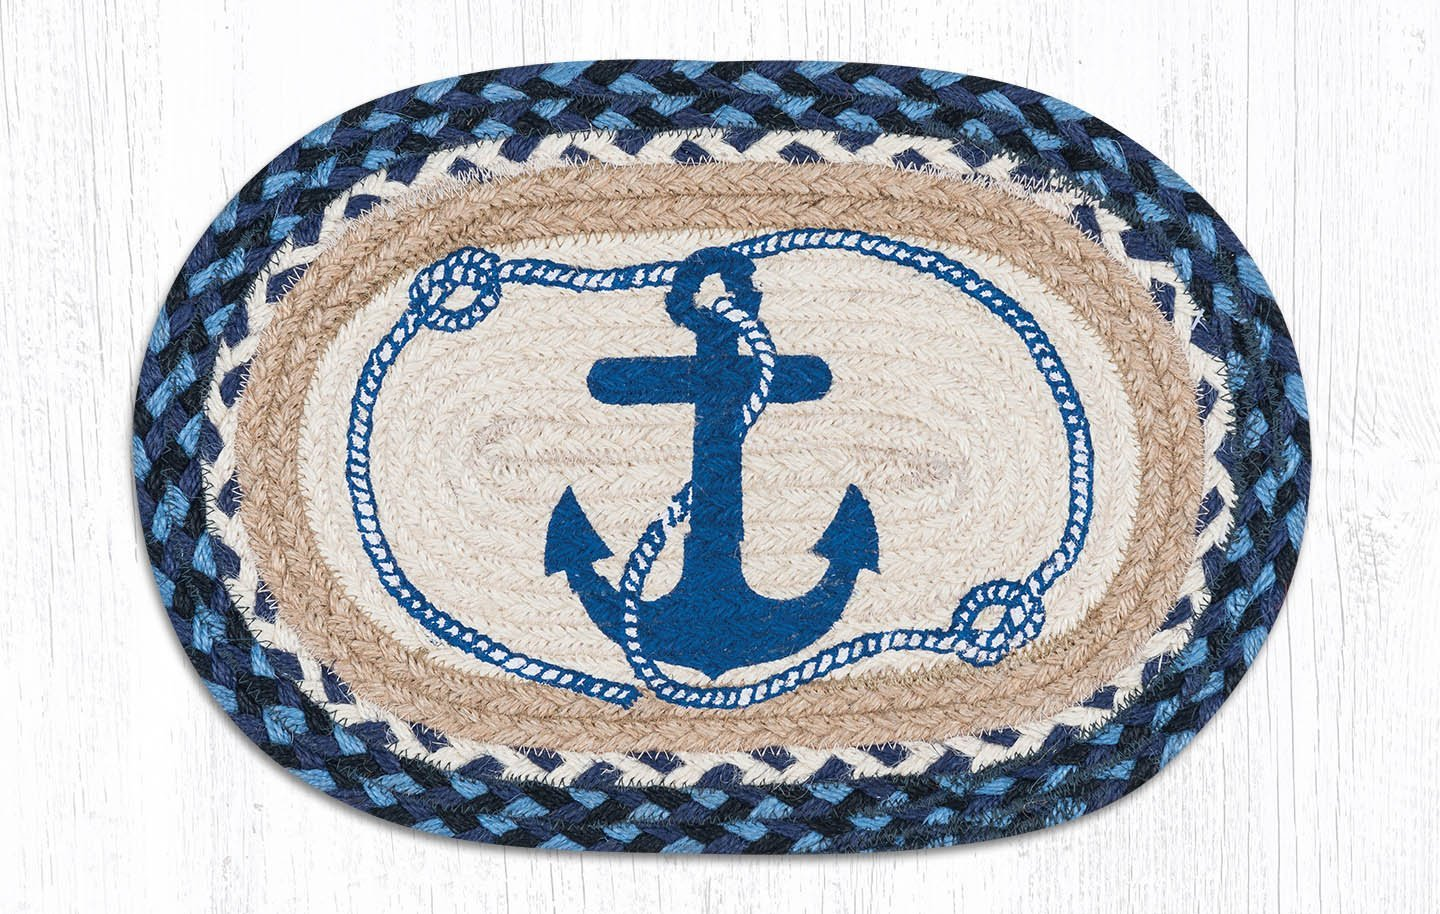 Heart of America Navy Anchor Printed Oval Small Placemat 10in. by 15in. - Set of 4